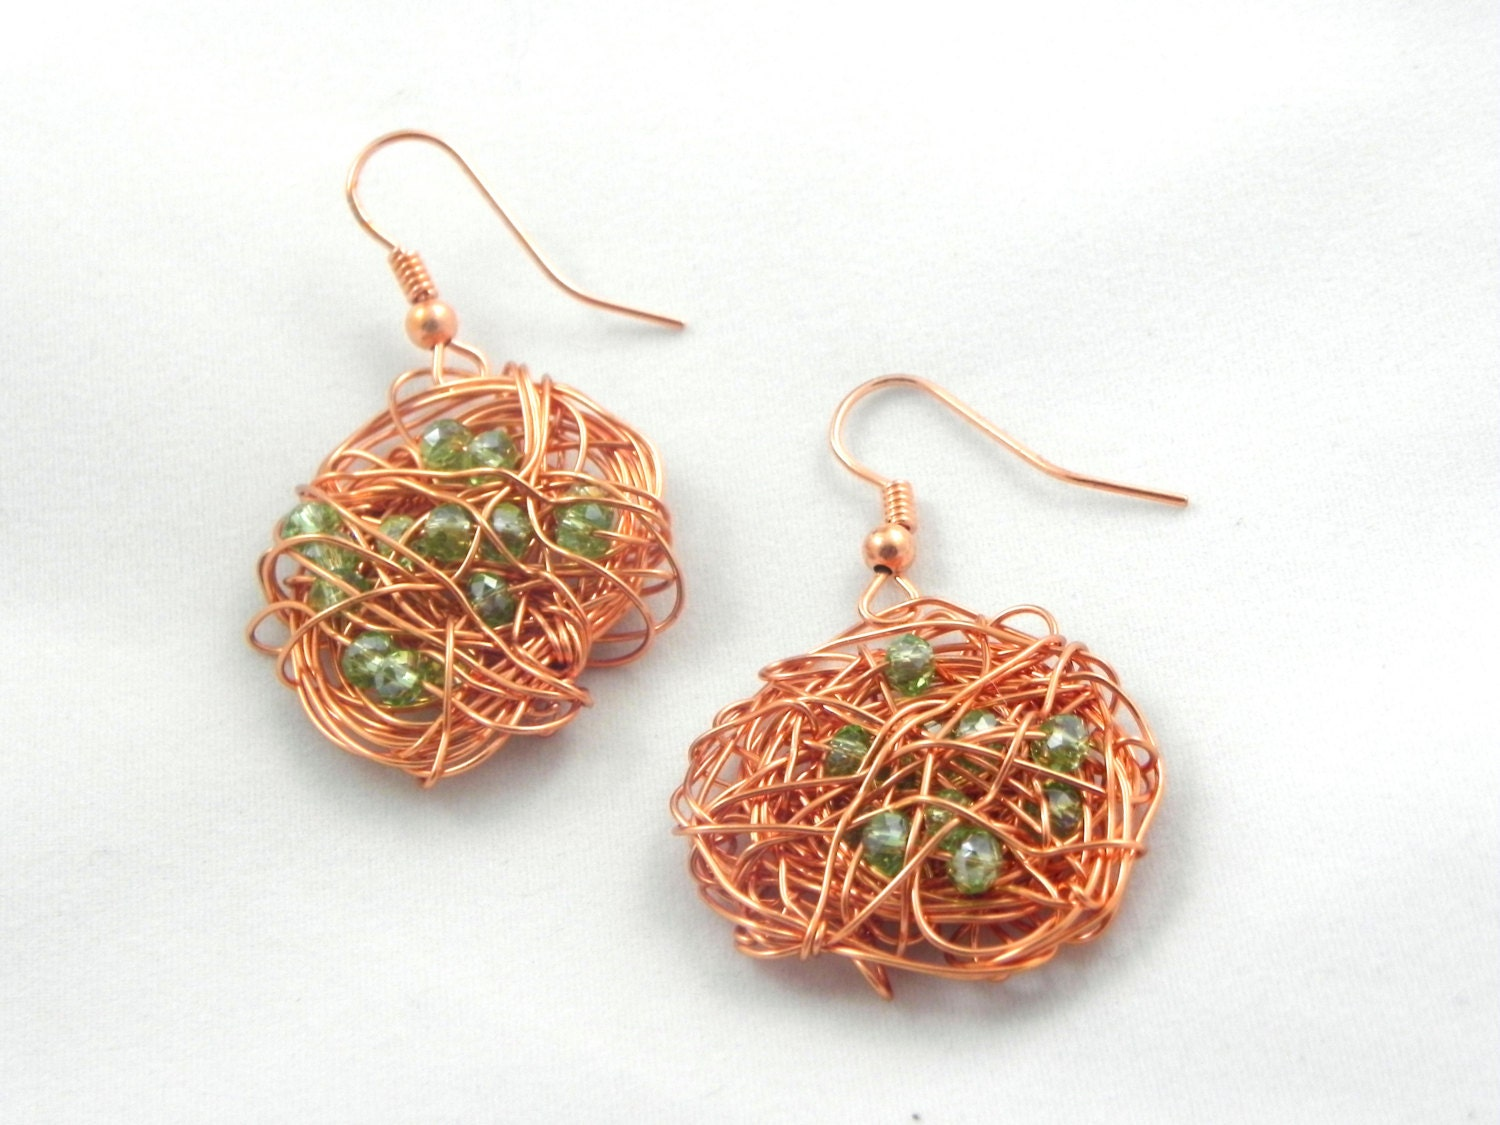 copper wire wrapped earring with mint green glass bead detail, bird nest earring, rose gold earring - MyALaModeBoutique